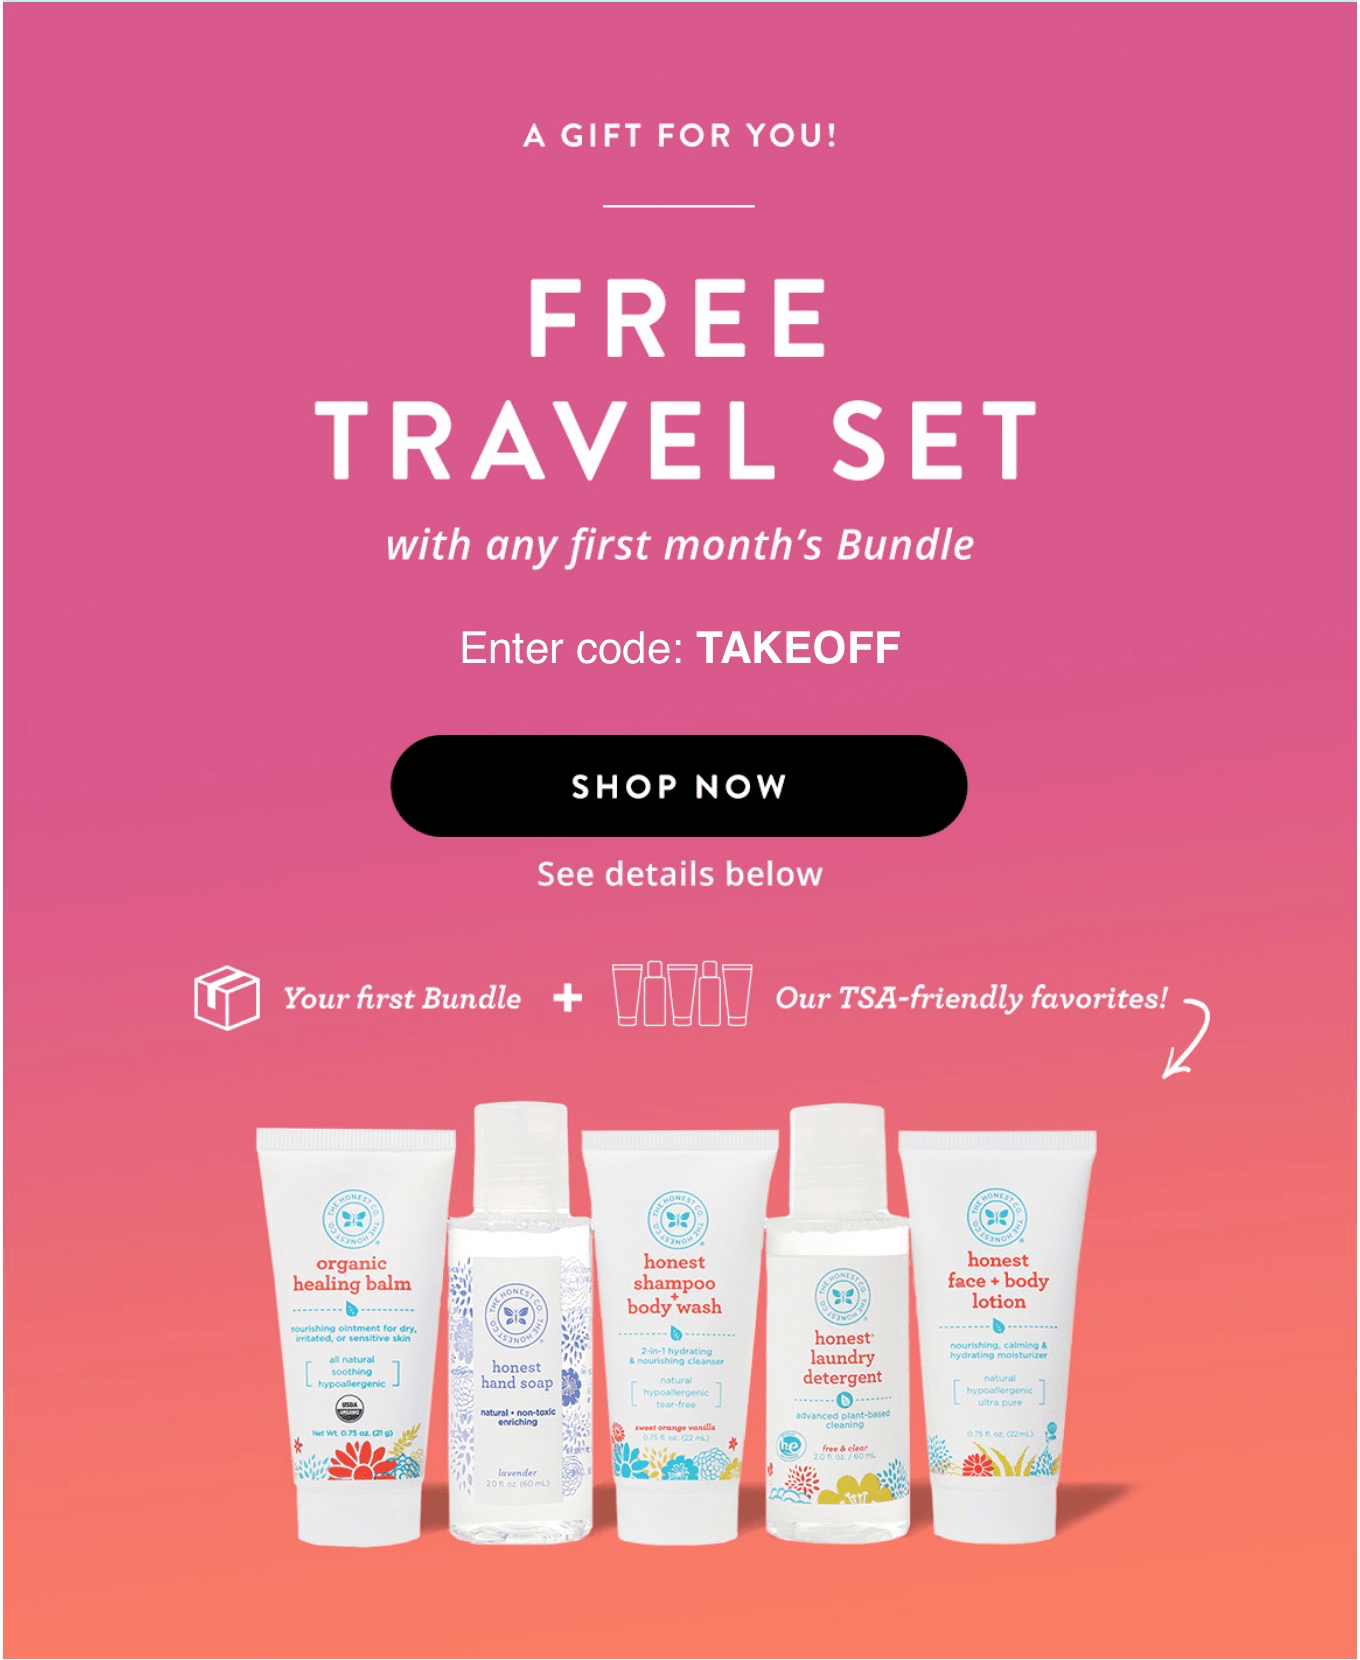 Free Travel Set with Honest Company Bundle Deal!